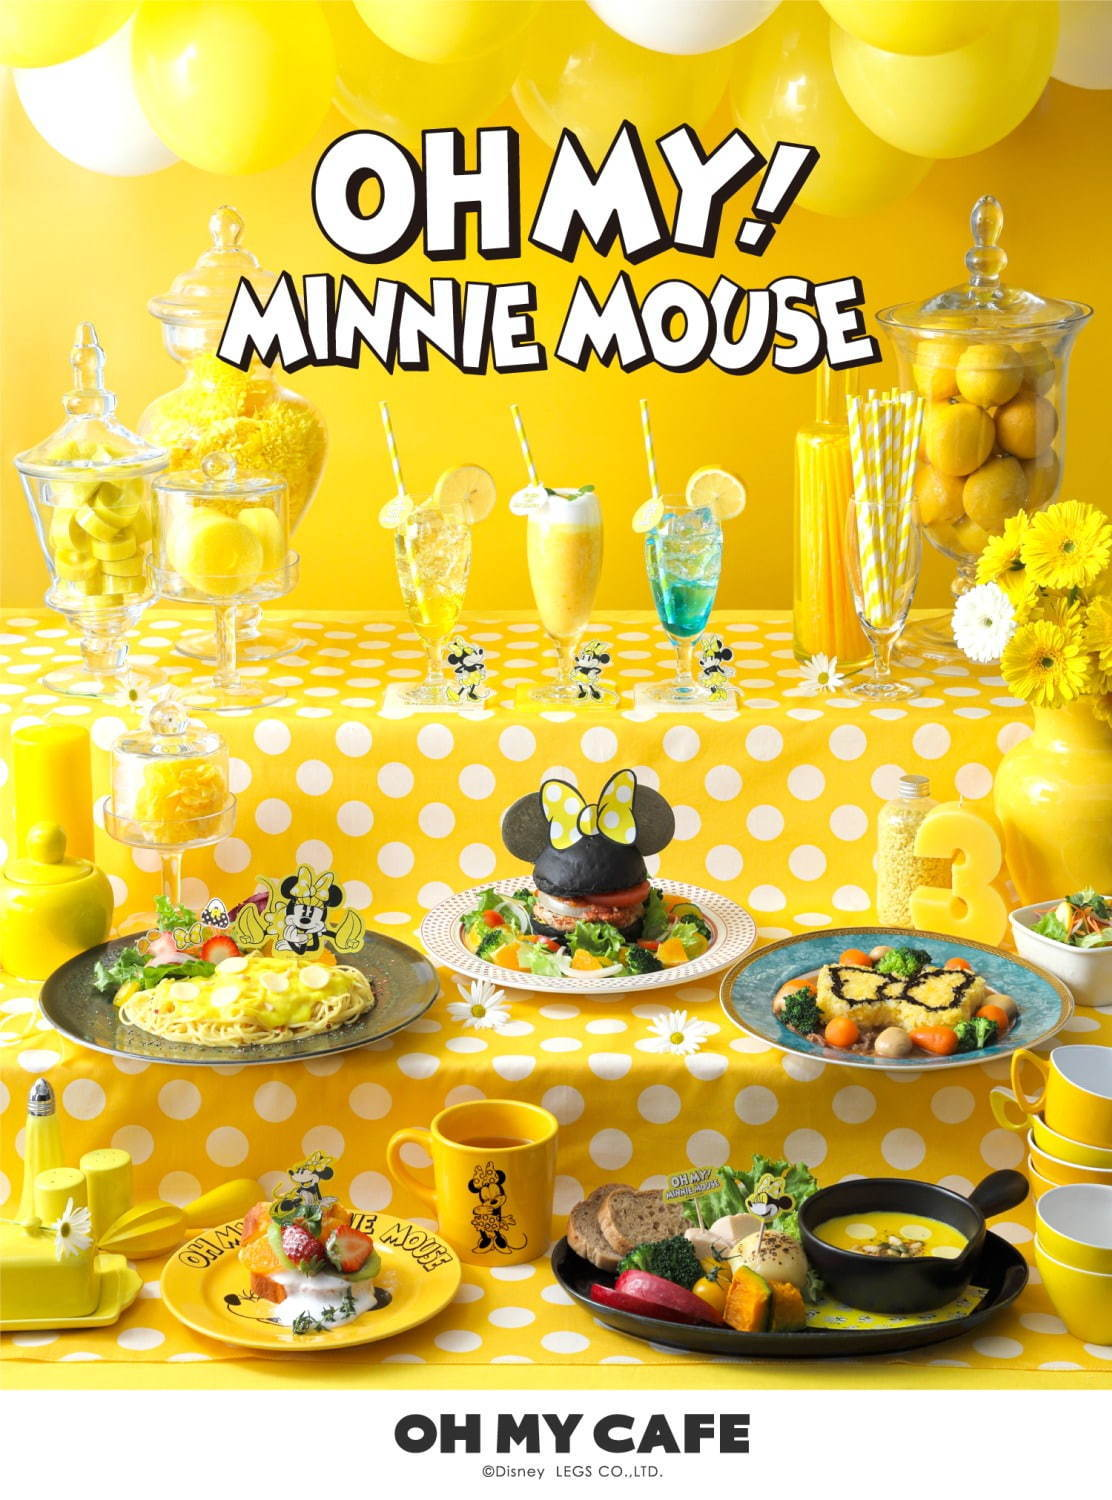 MINNIE MOUSE CAFE in Japan2020